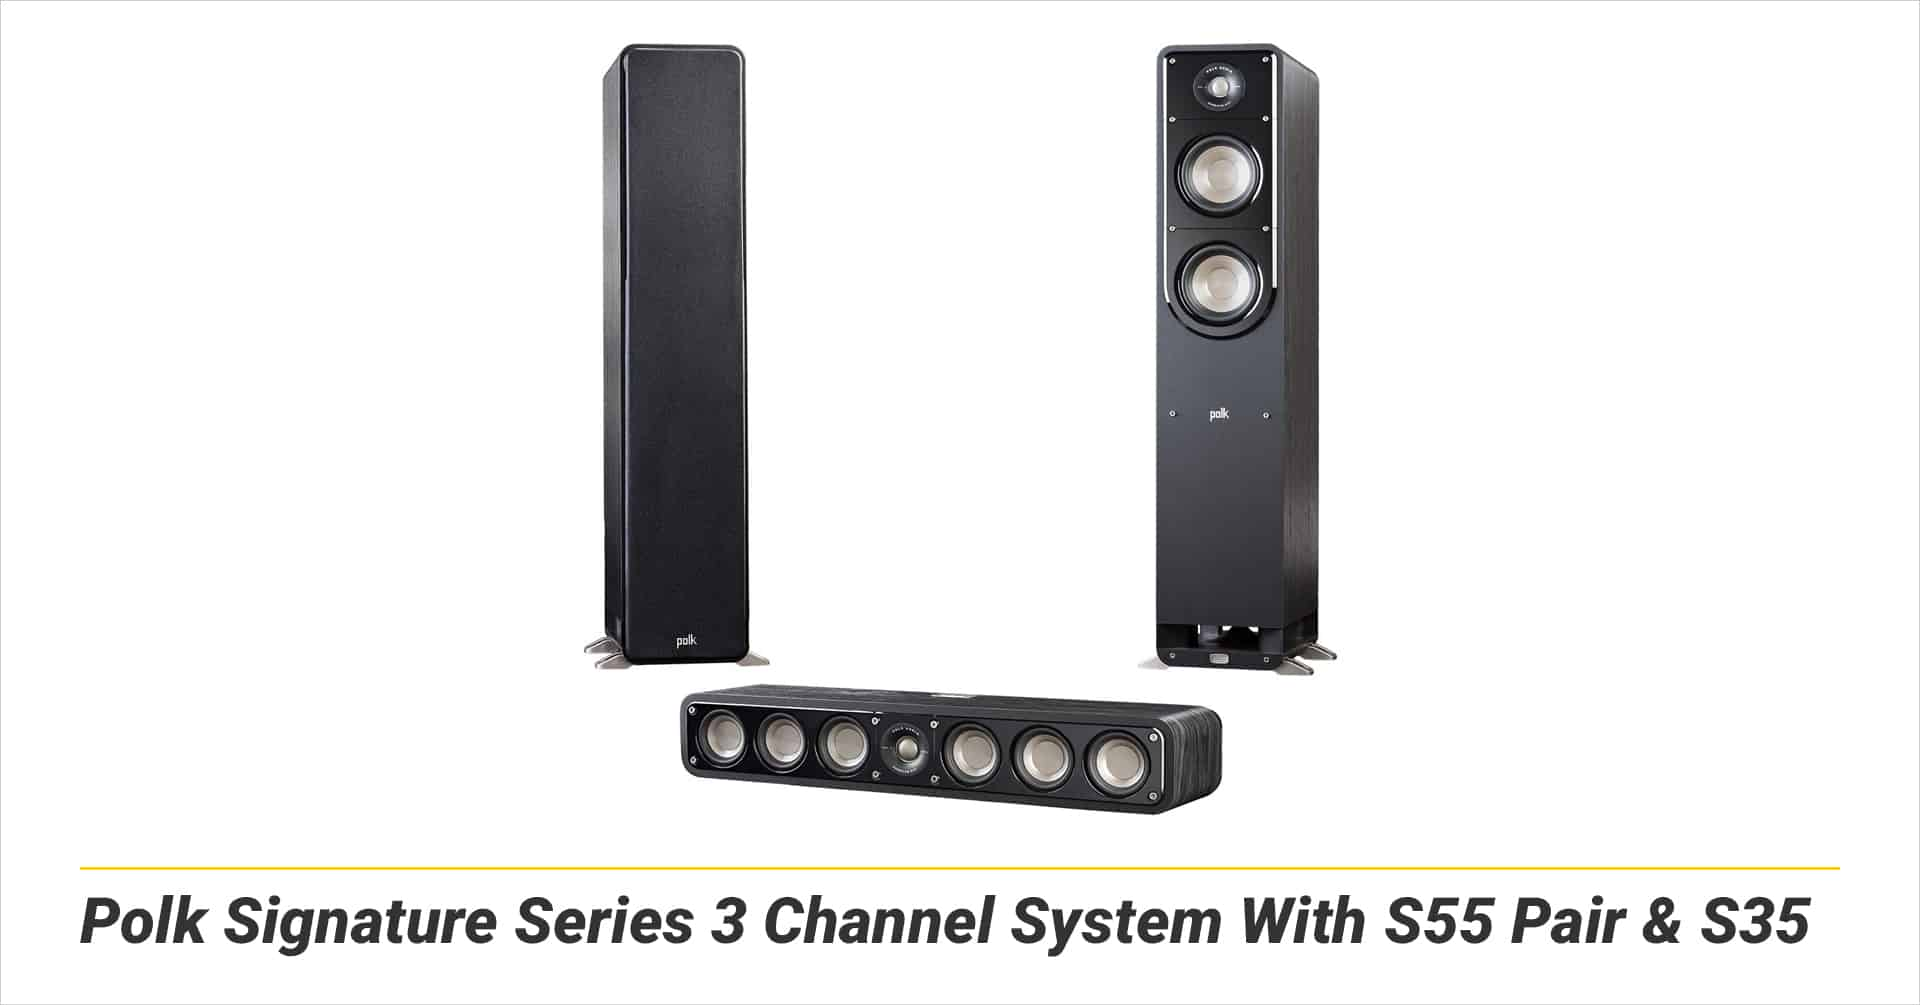 Polk Signature Series 3 Channel System With S55 Pair & S35